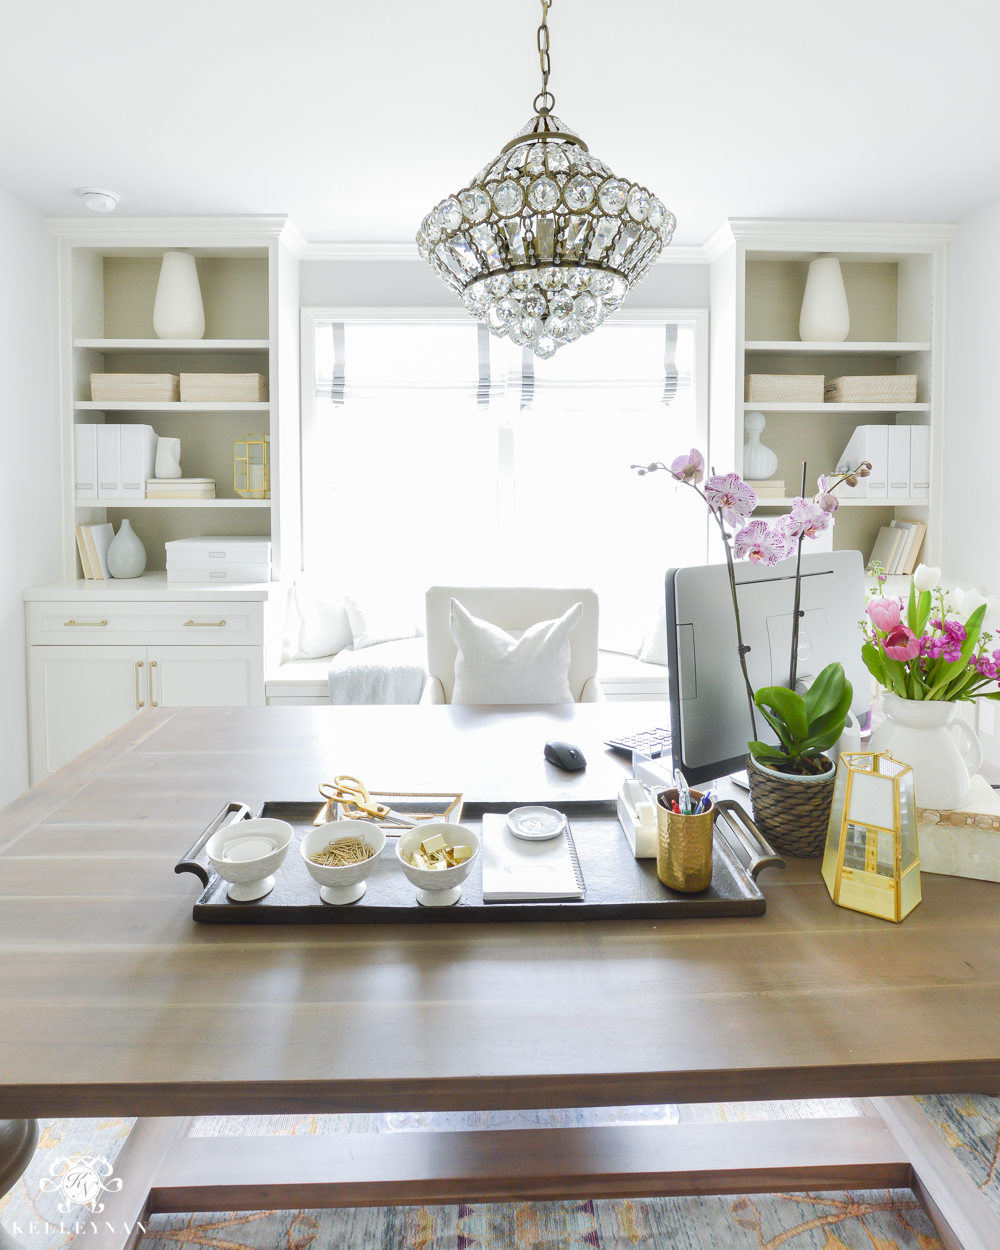 Shades of Summer Home Tour with Neutrals and Naturals- home office with built-ins and chandelier